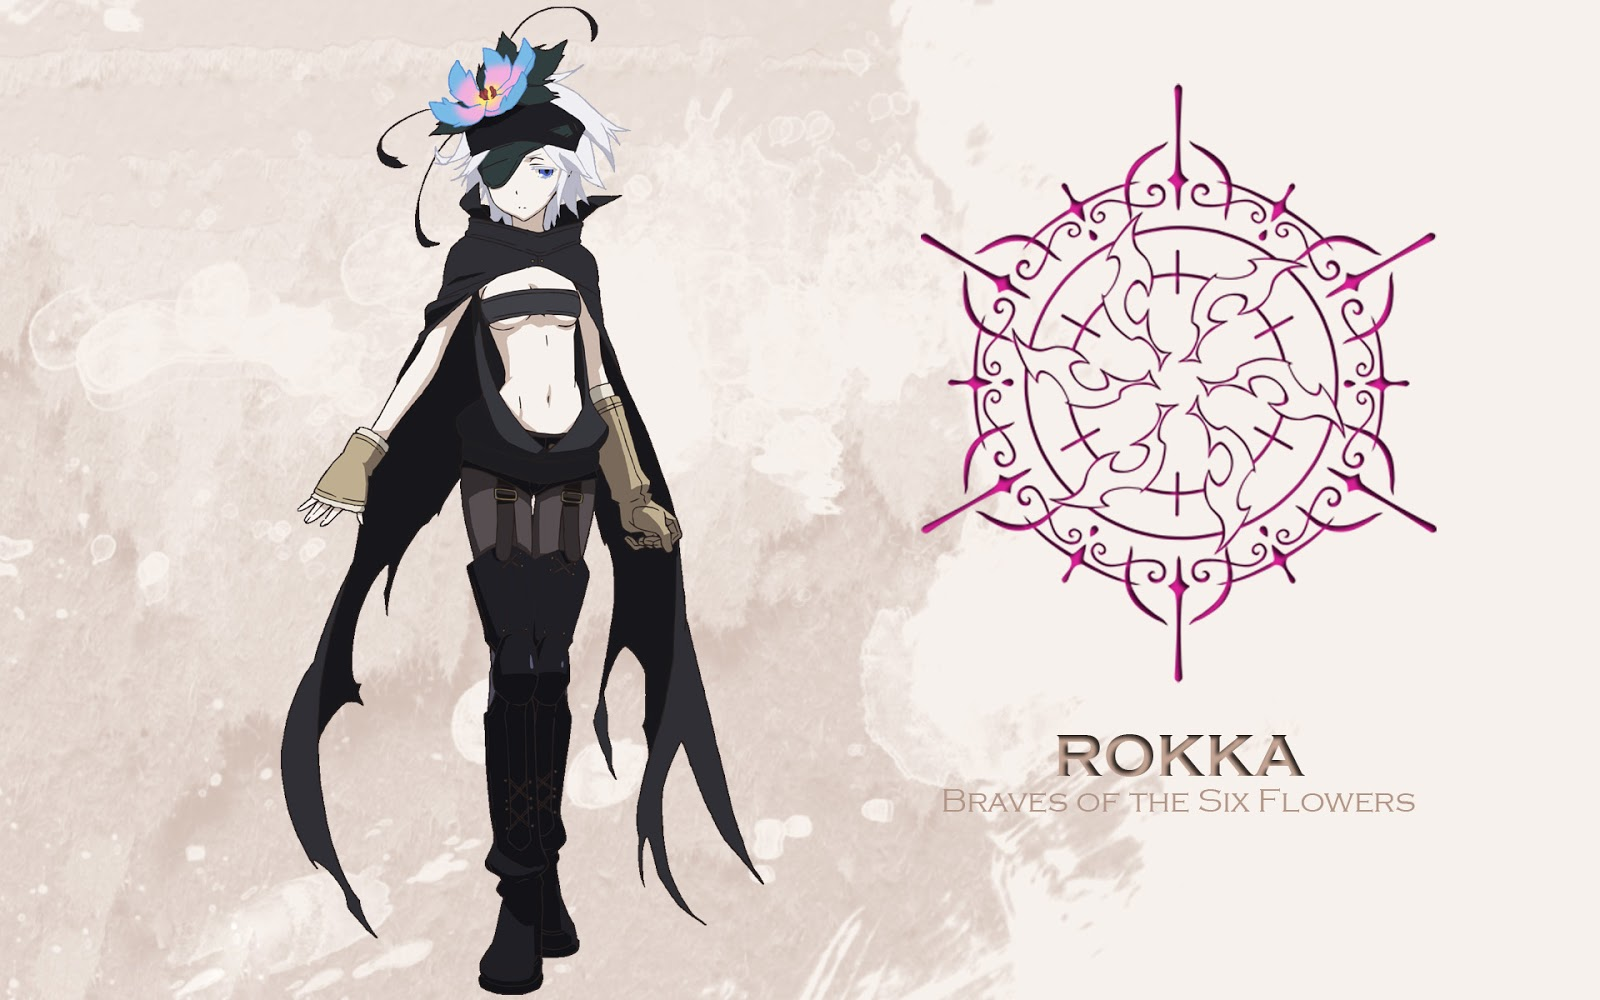 Rokka braves of the six flowers cosplay